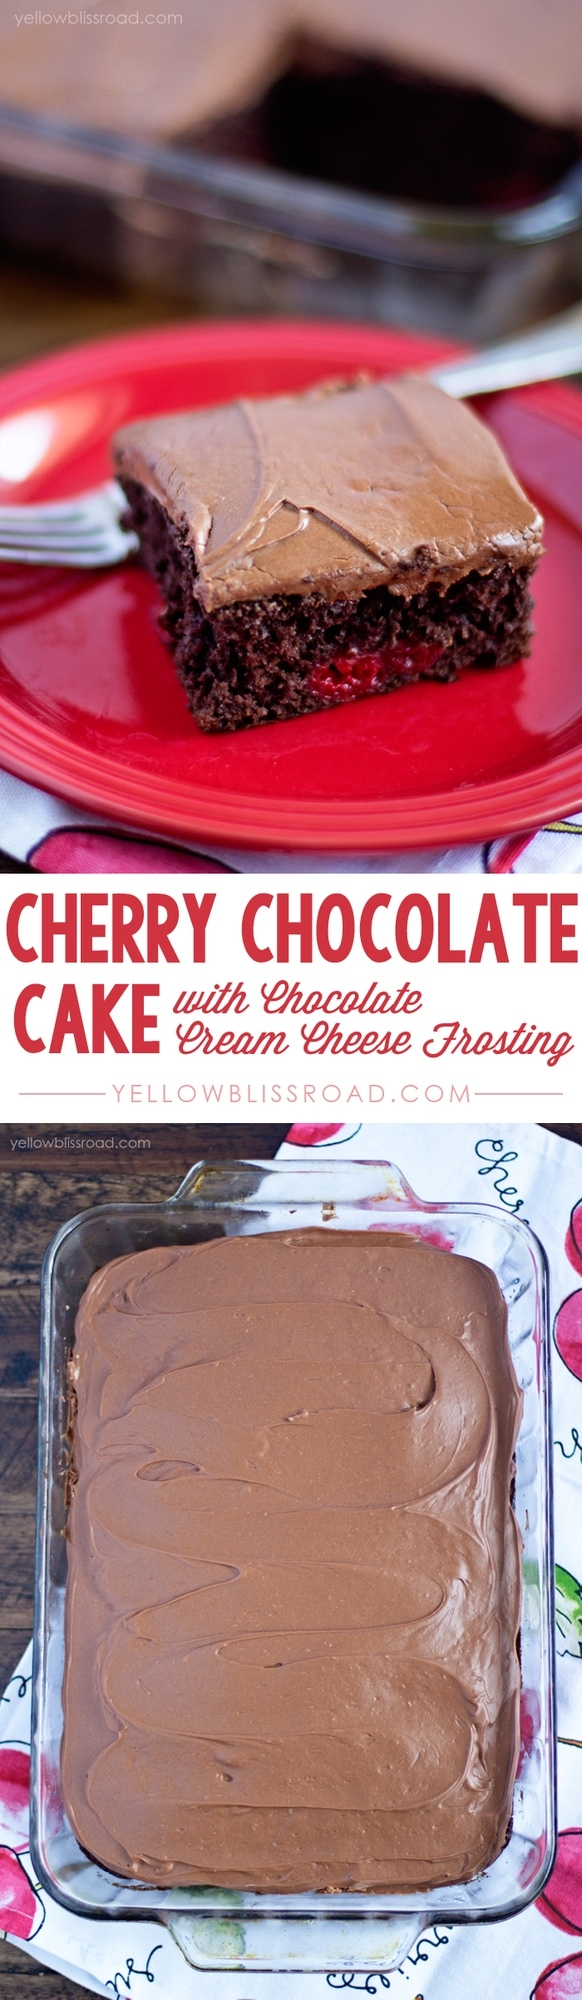 Sweet cherry pie filling combined with luscious dark chocolate cake mix, all topped with a decadent Chocolate Cream Cheese Frosting.